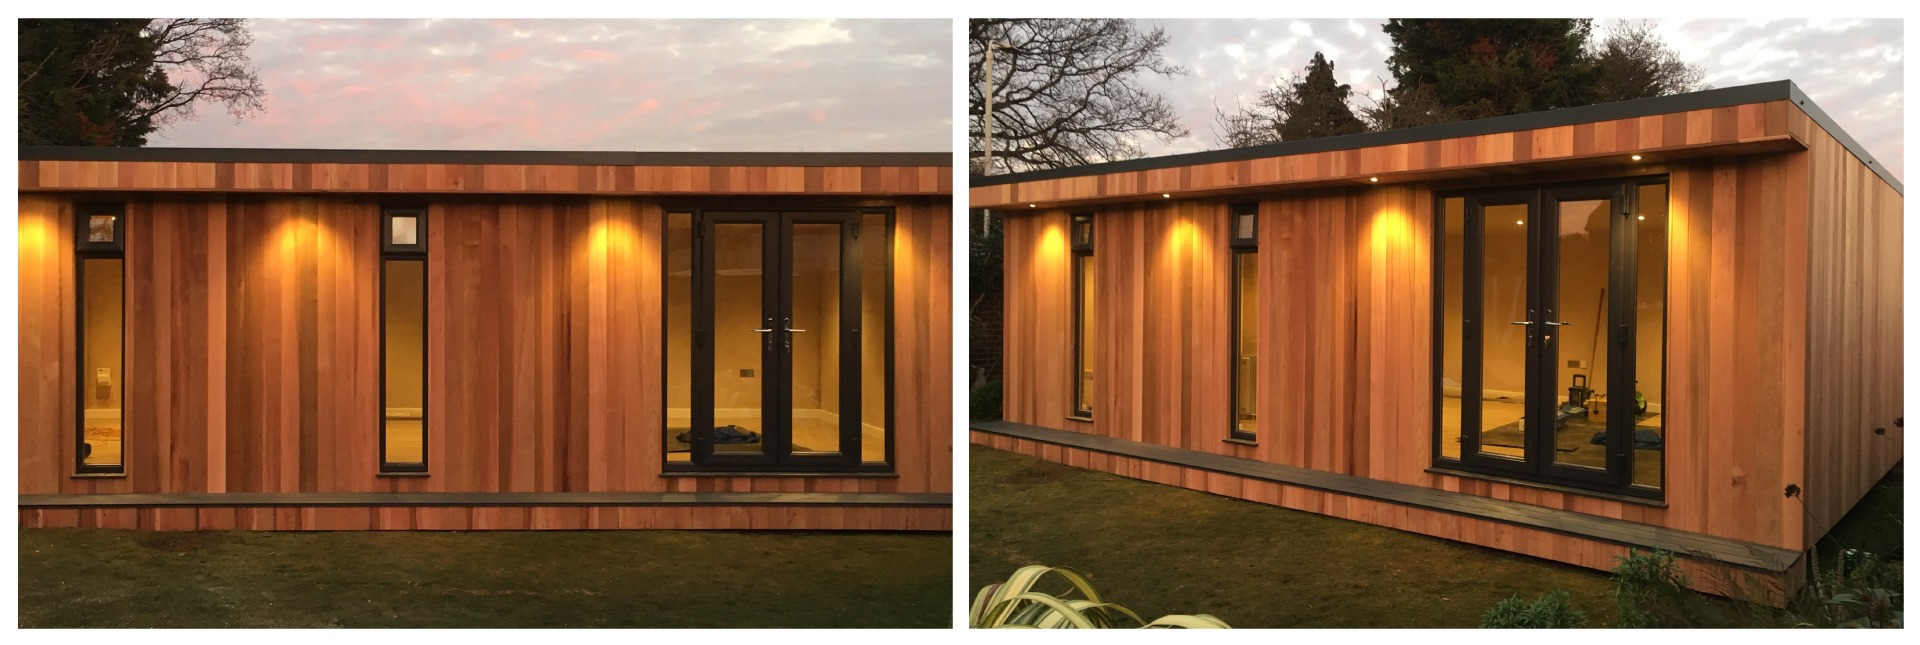 garden room front and angled